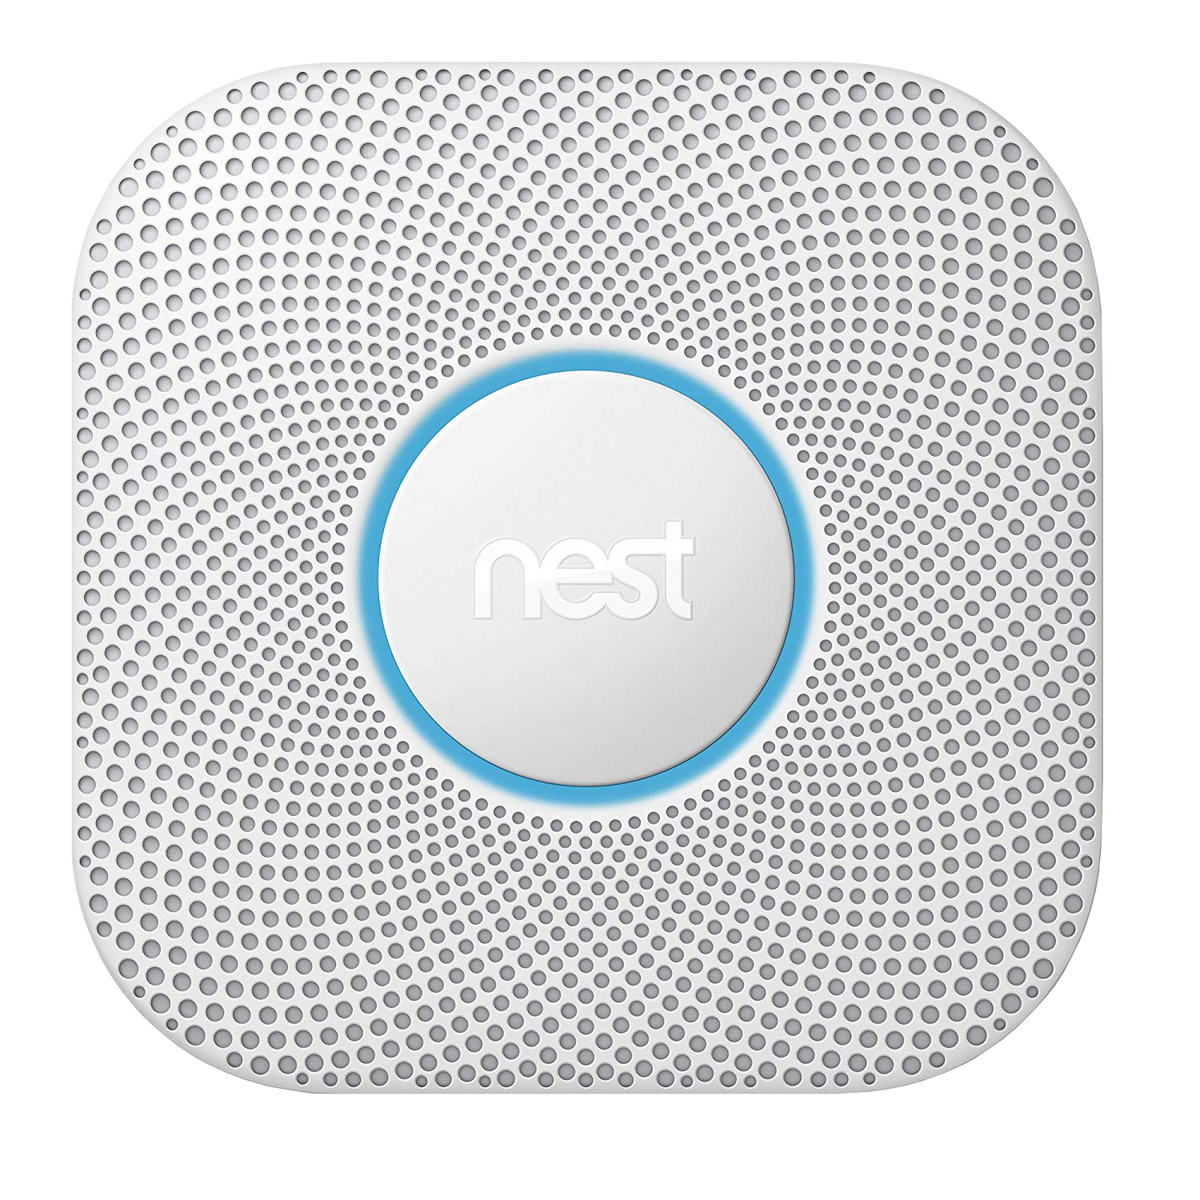 NEST Protect Smoke + Carbon Monoxide Alarm (2nd Generation) - White